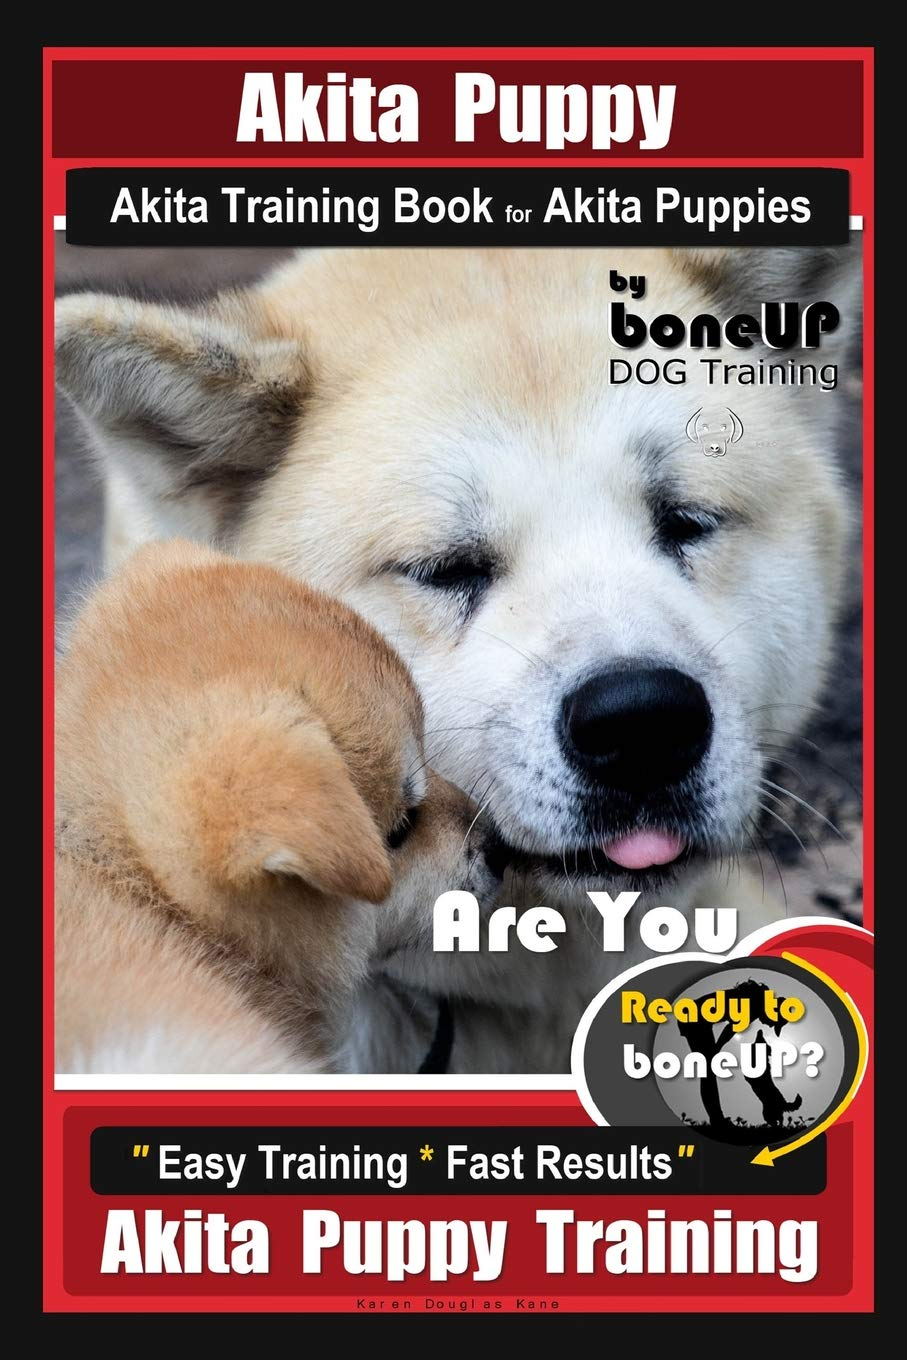 Akita Puppy Akita Training Book for Akita Puppies By BoneUP DOG Training: Are You Ready to Bone Up? Easy Training * Fast…